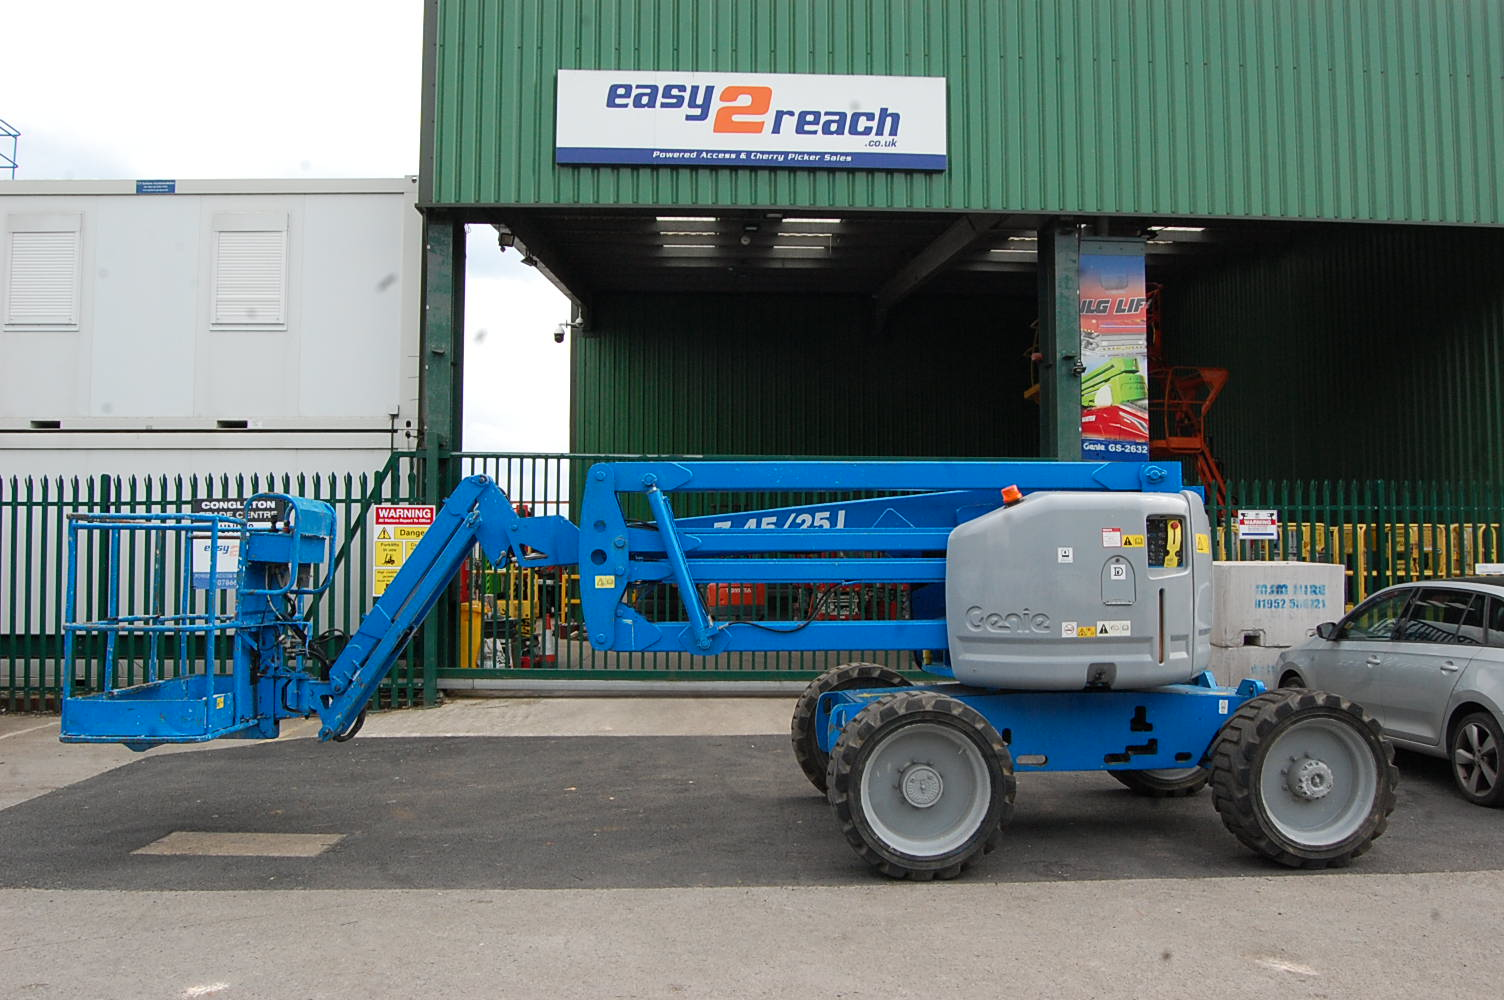 2007 Genie Z45/25J 4×4 Rough Terrain Boom Lift